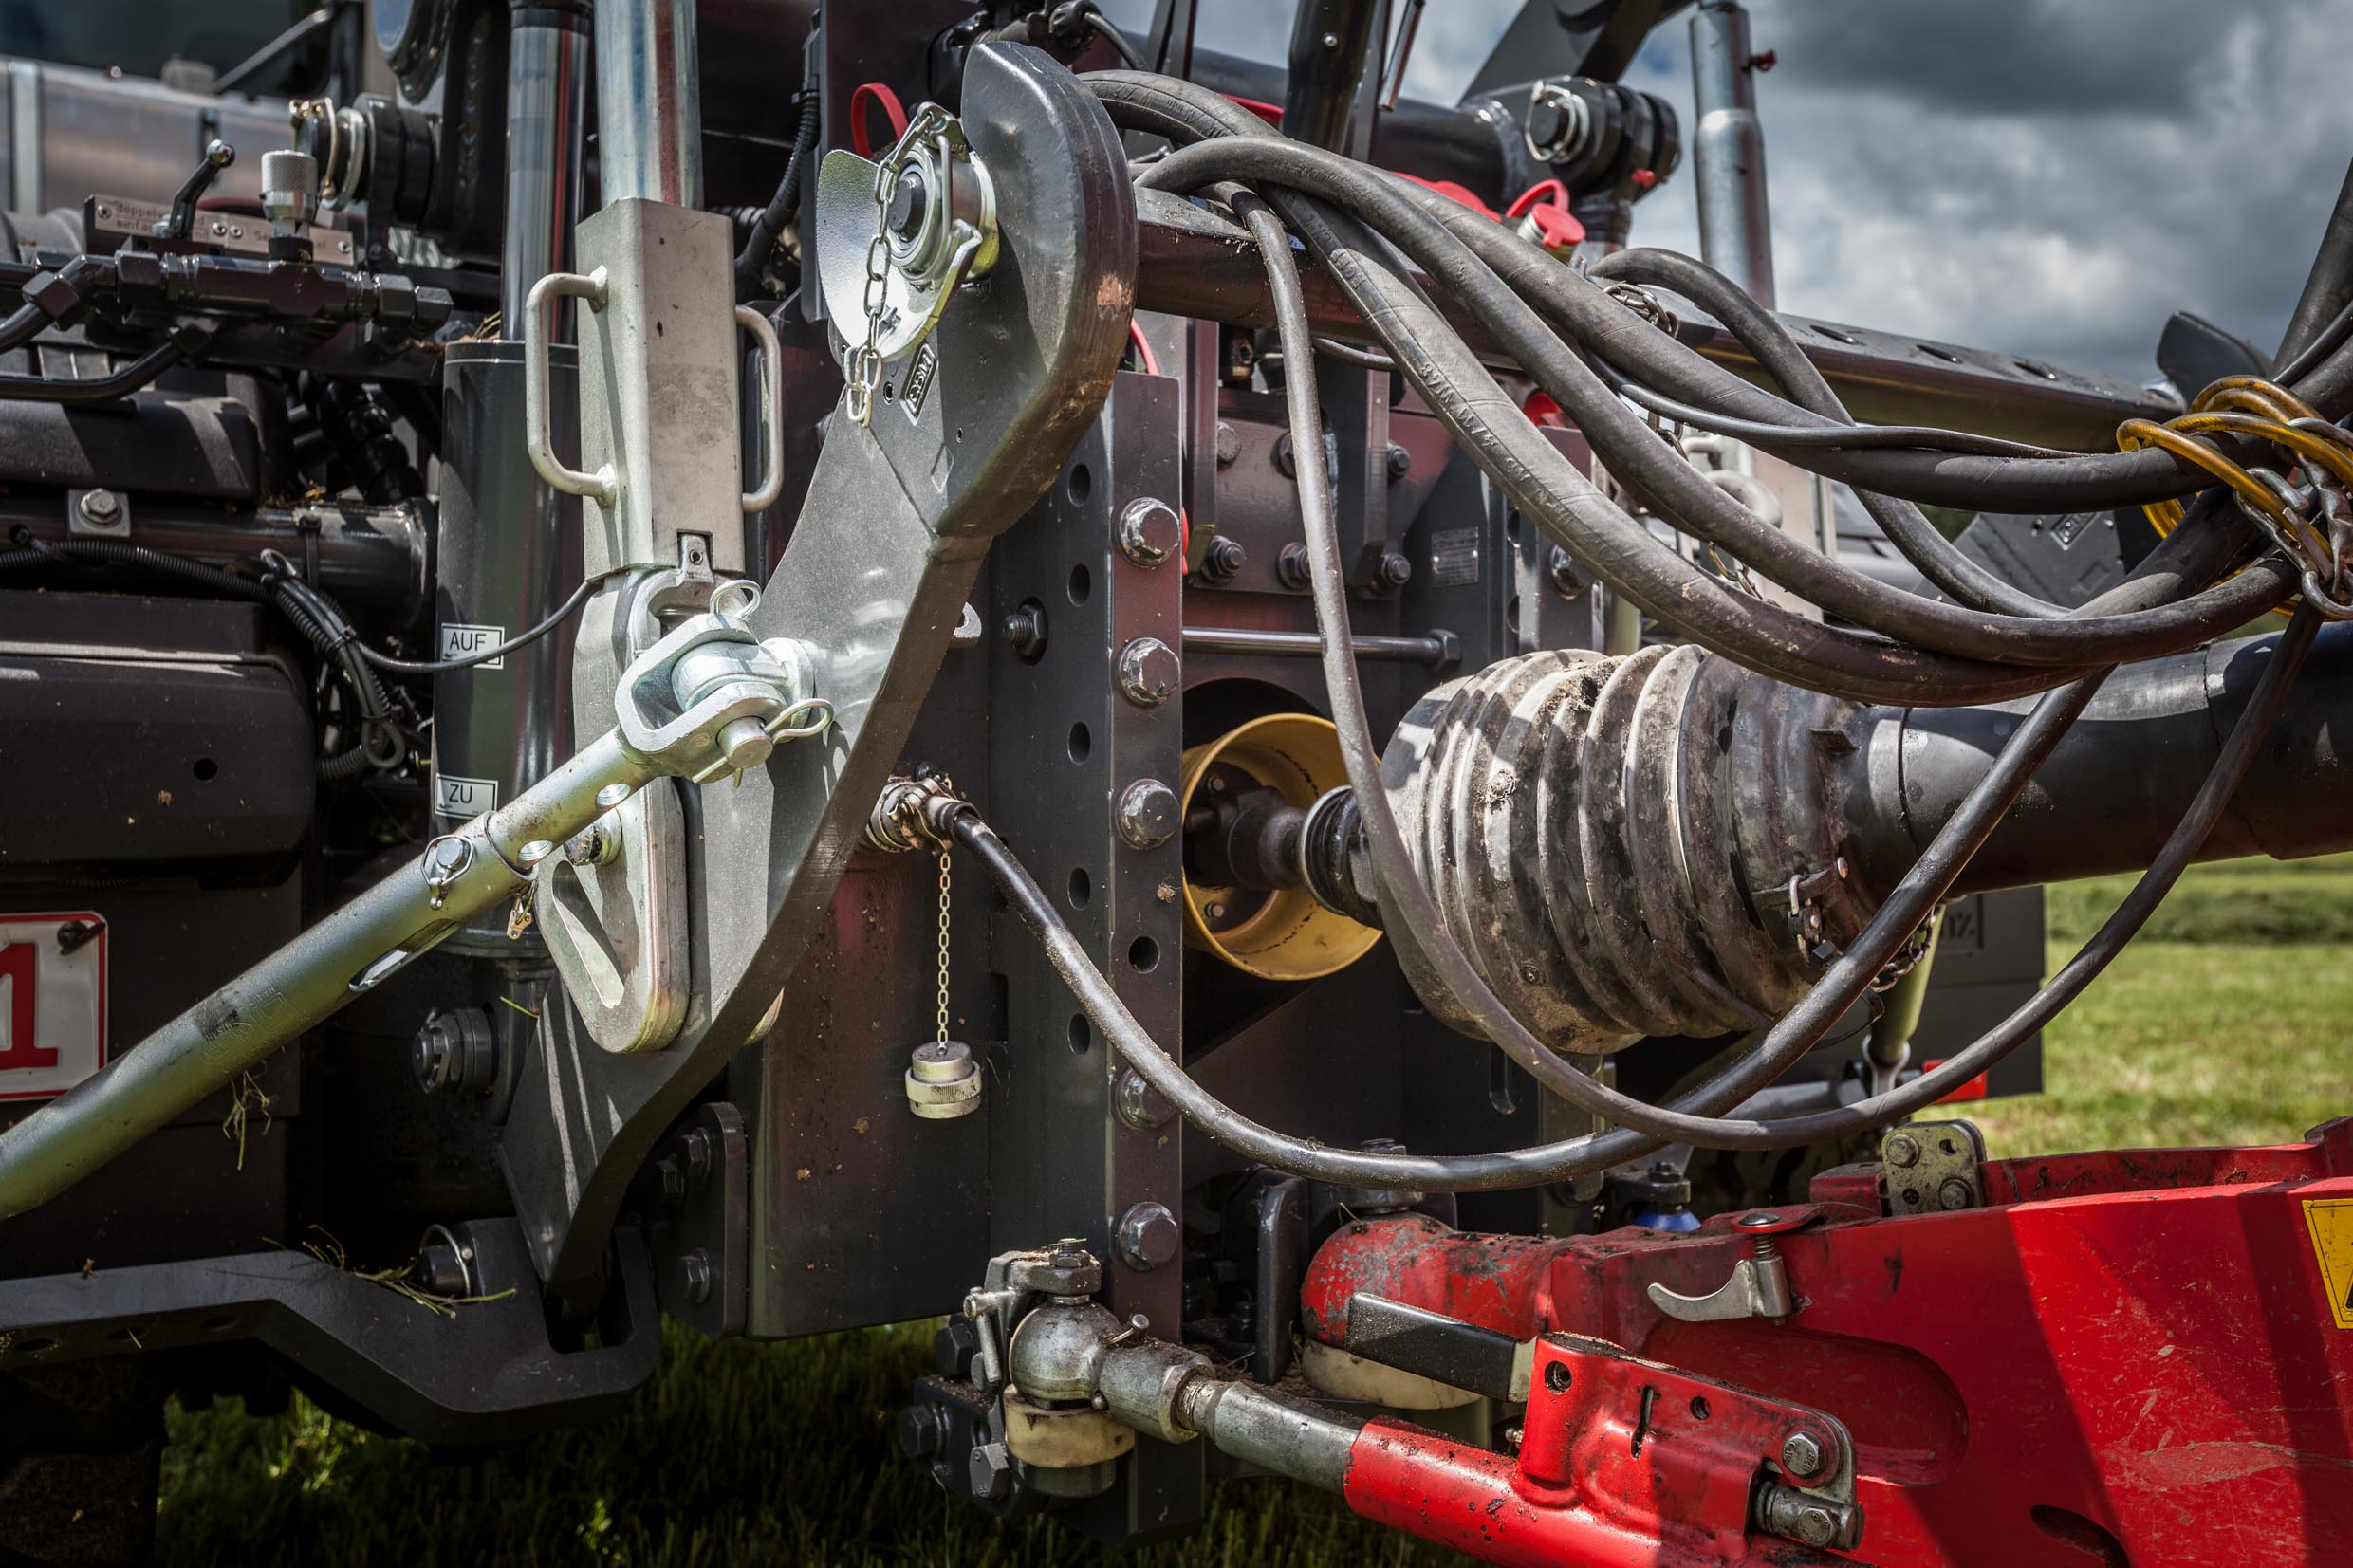 Room with a view: Tractor conversion opens up new possibilities